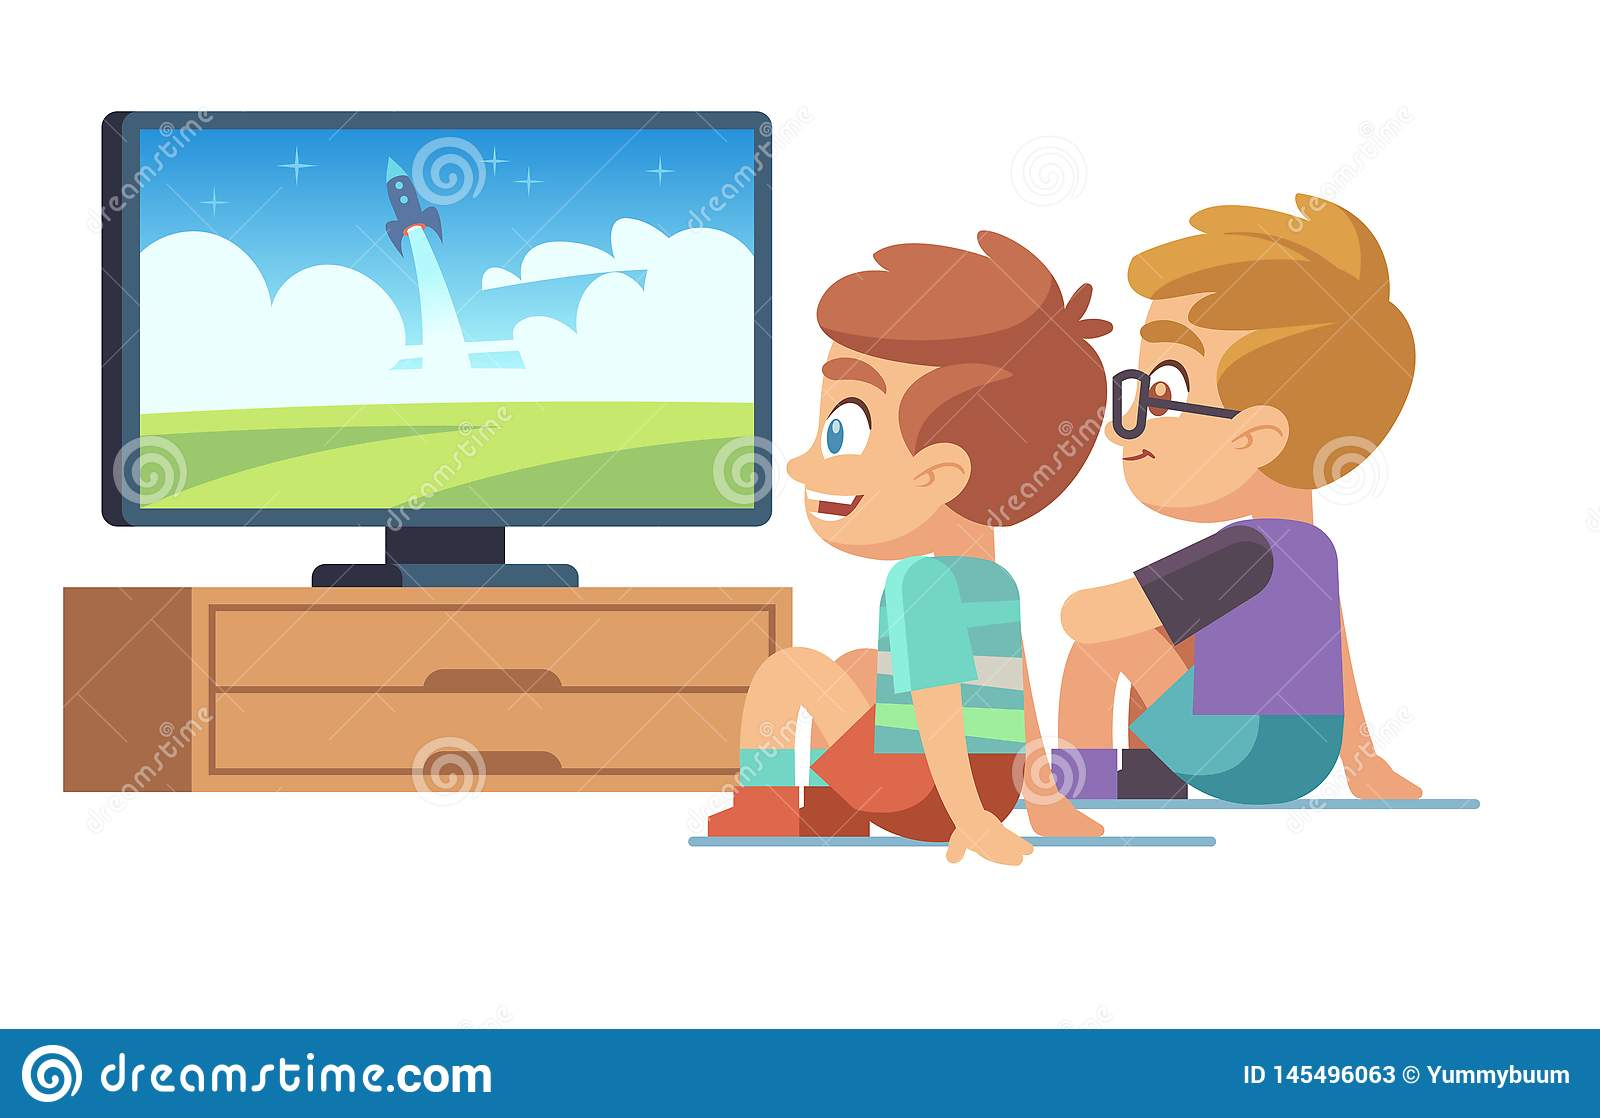 Kids watch tv. Children movie home boy girl watches tv set displaying picture screen character electric monitor cartoon